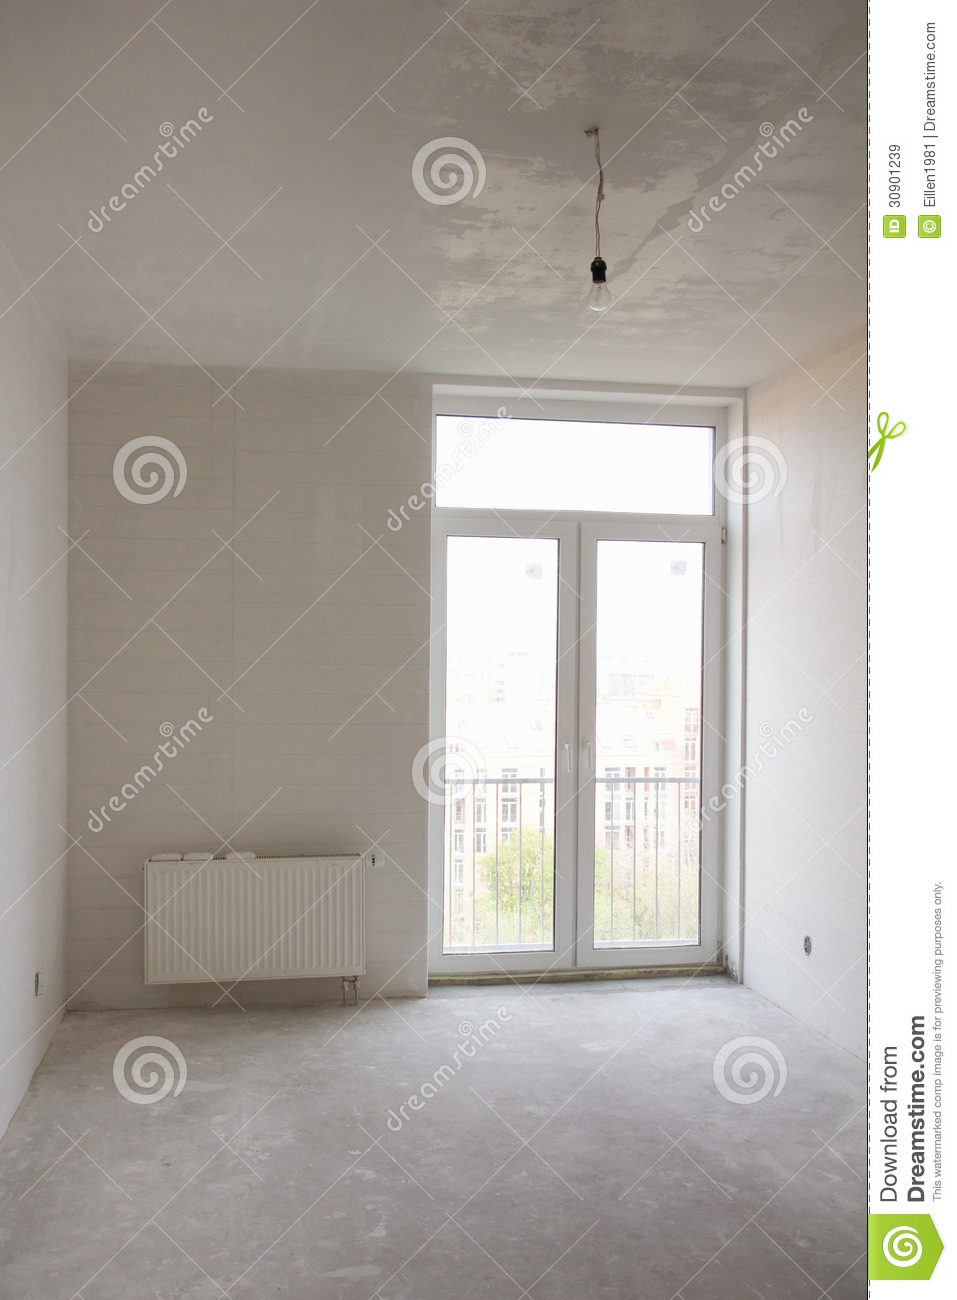 House with big window under construction royalty free for White room wallpaper